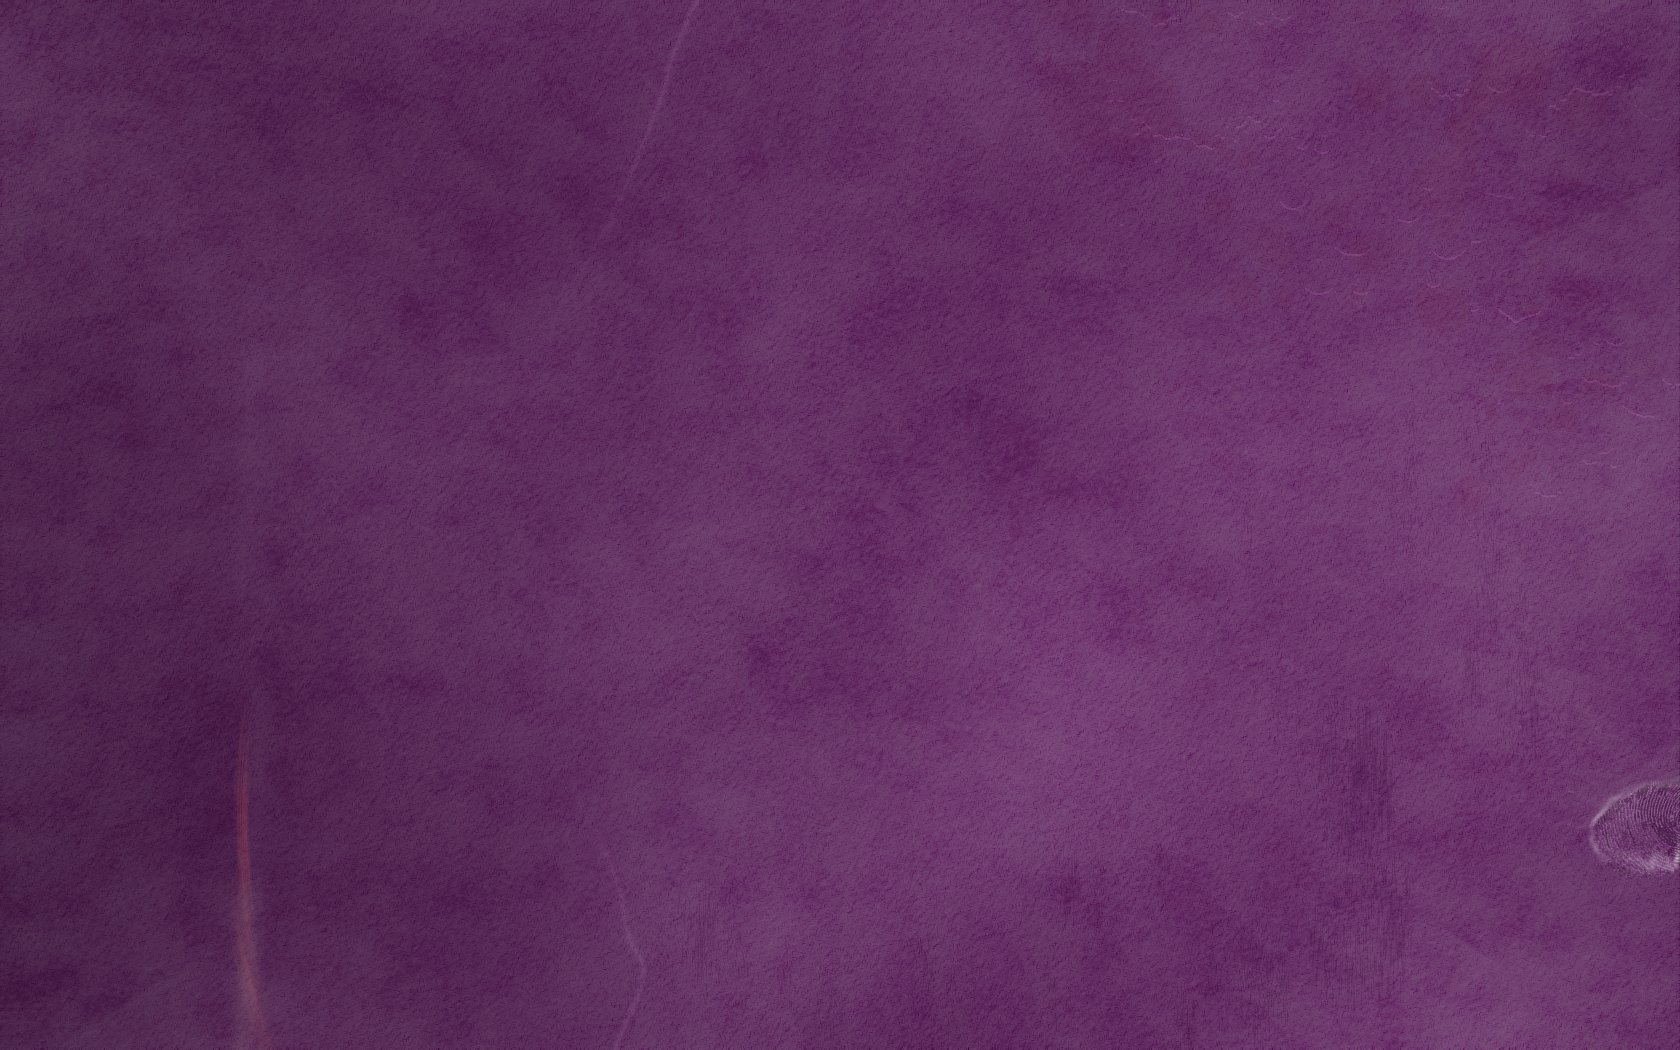 grunge no corner purple by 10r